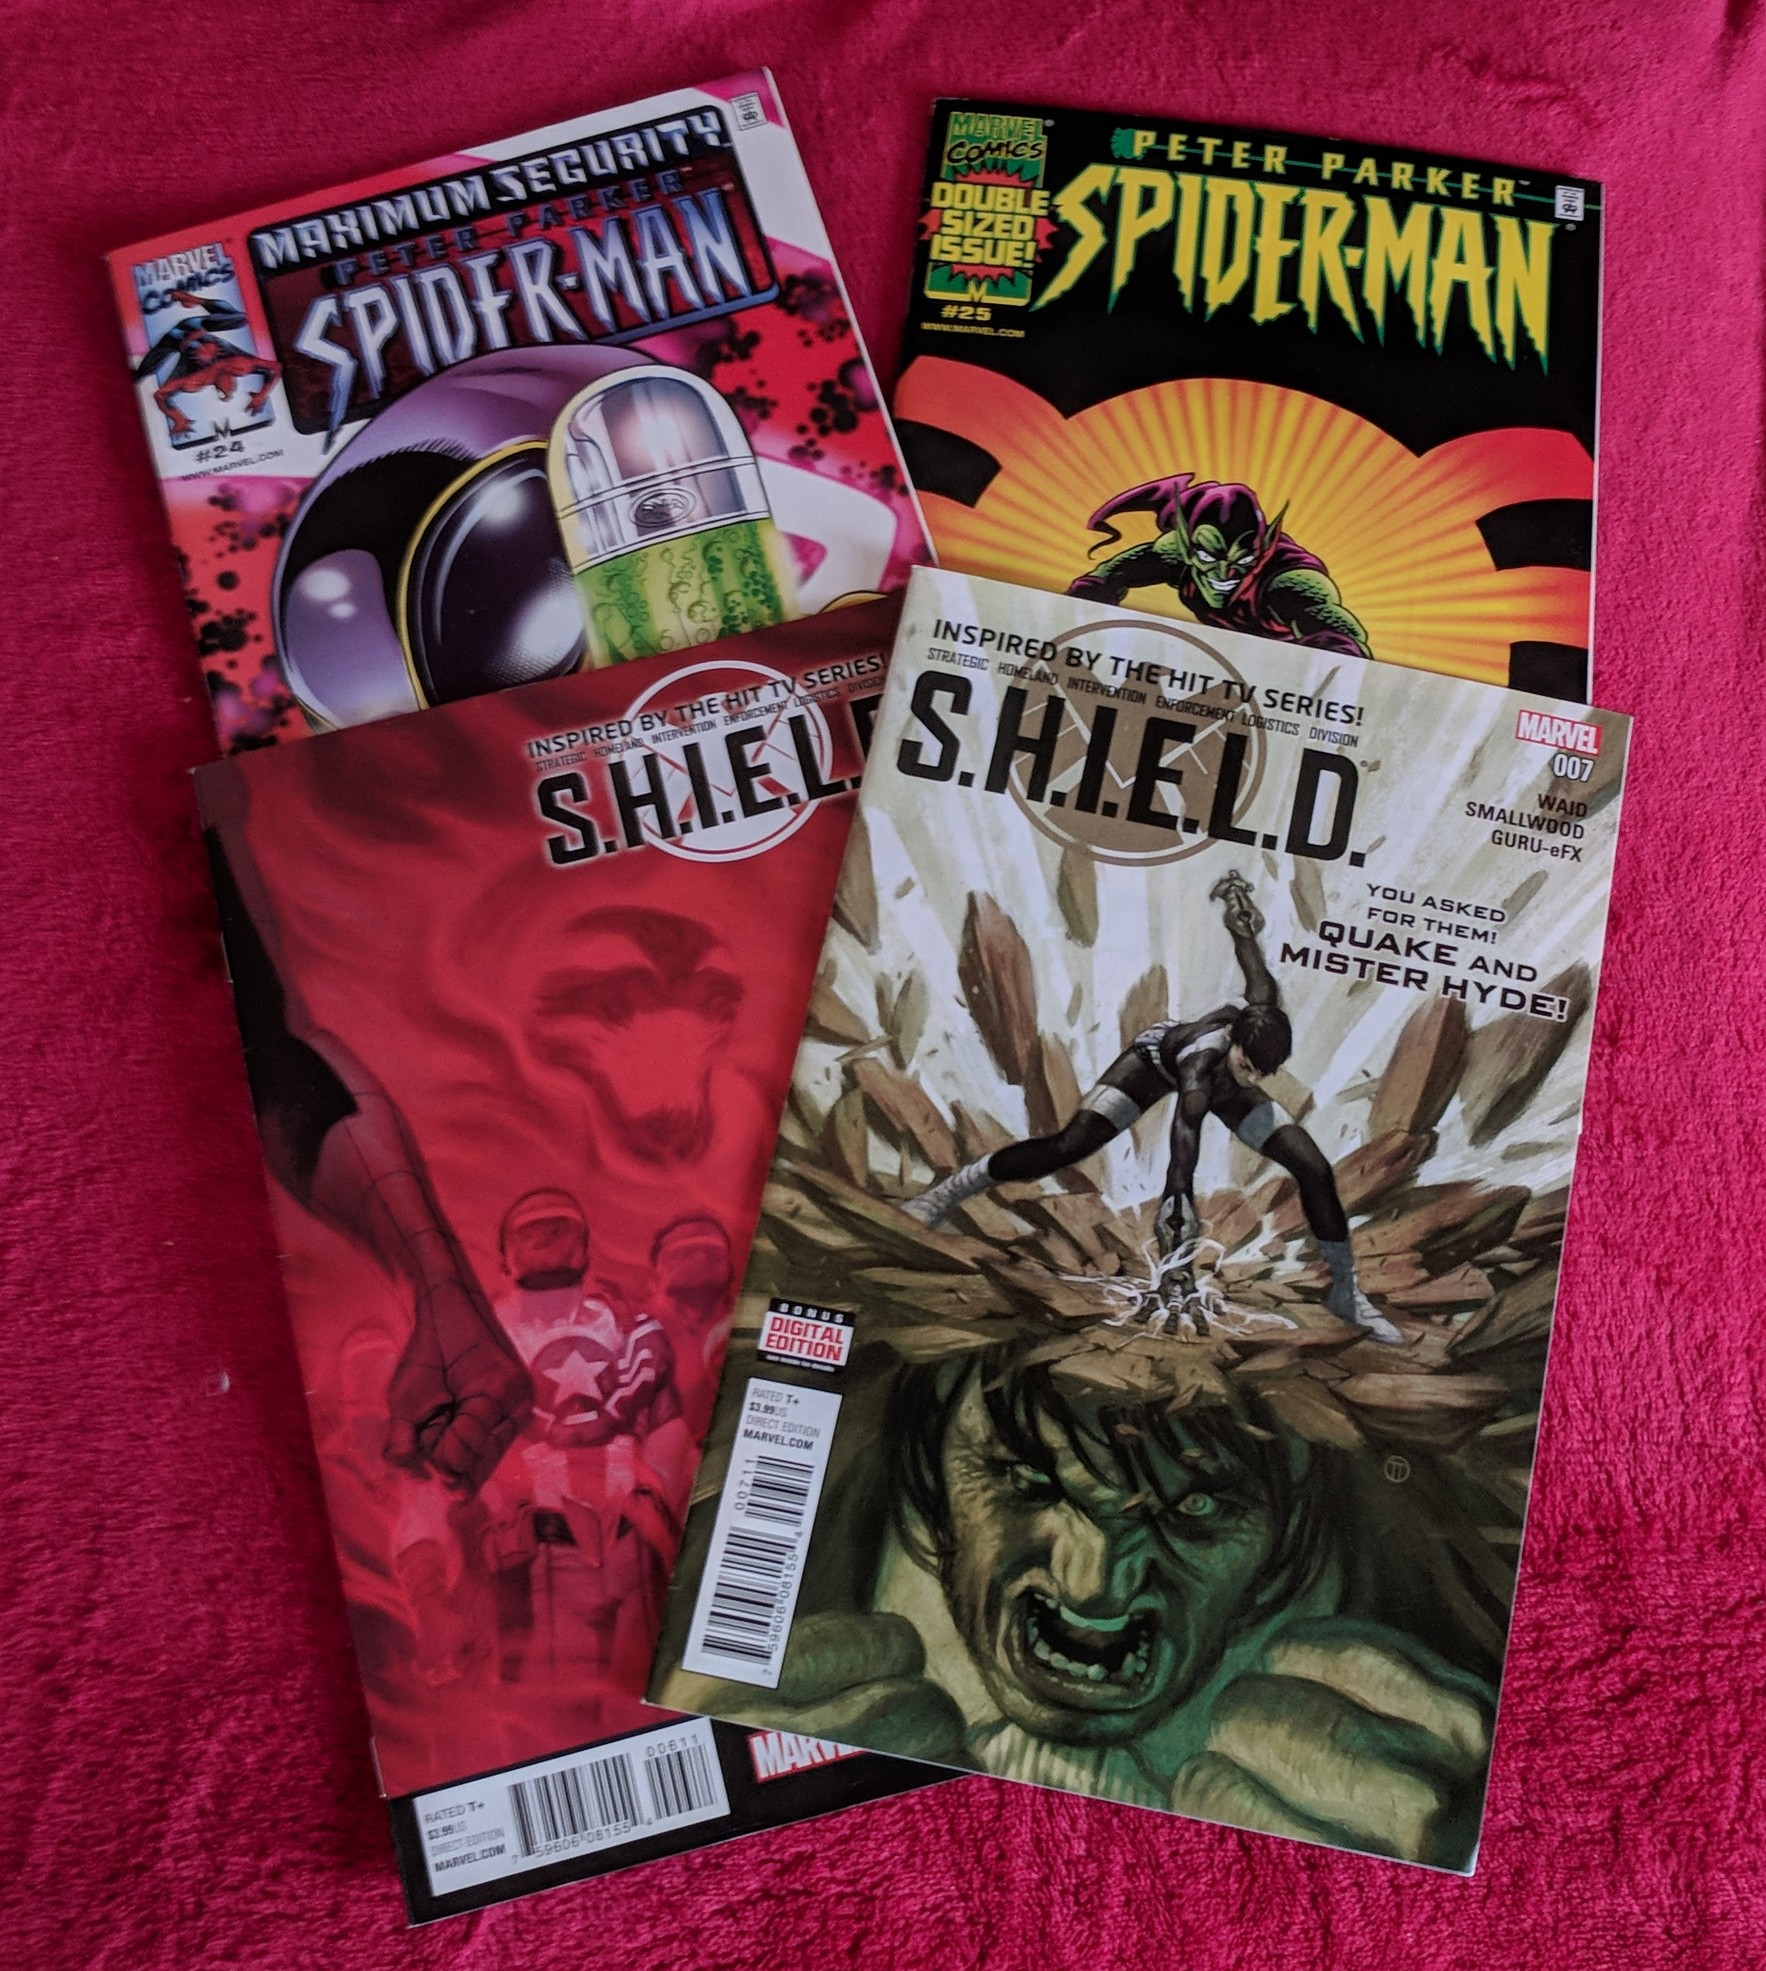 SHIELD and Spiderman comics